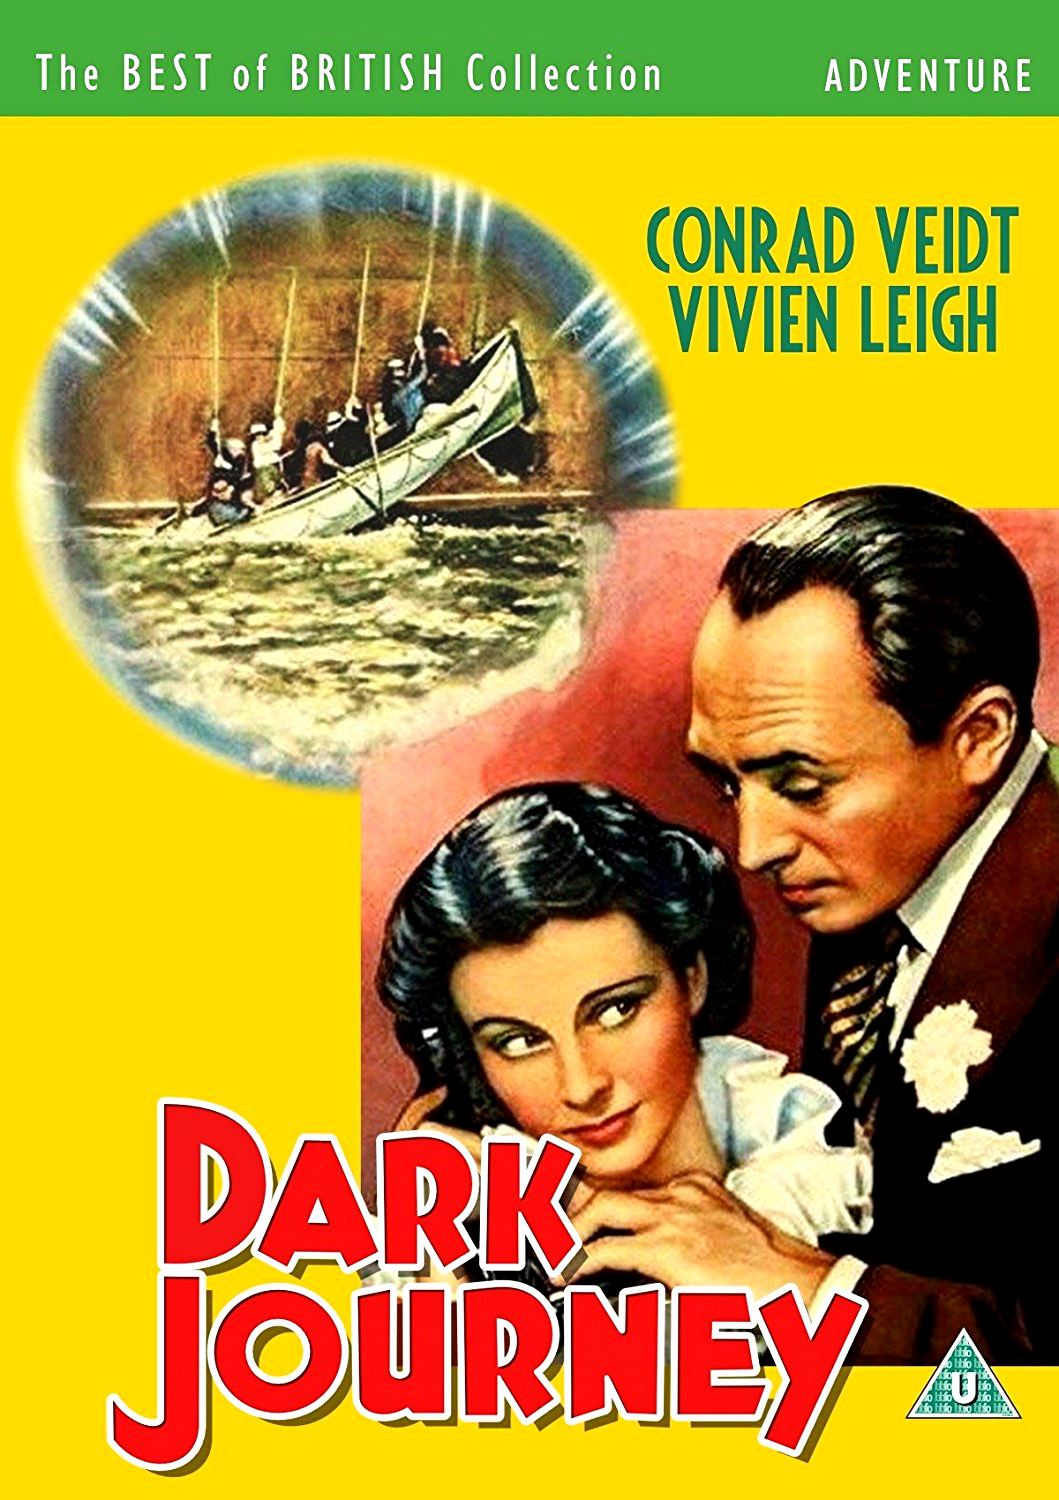 Dark Journey DVD from Screenbound Pictures and The Best of British Collection (Adventure).  Conrad Veidt Vivien Leigh